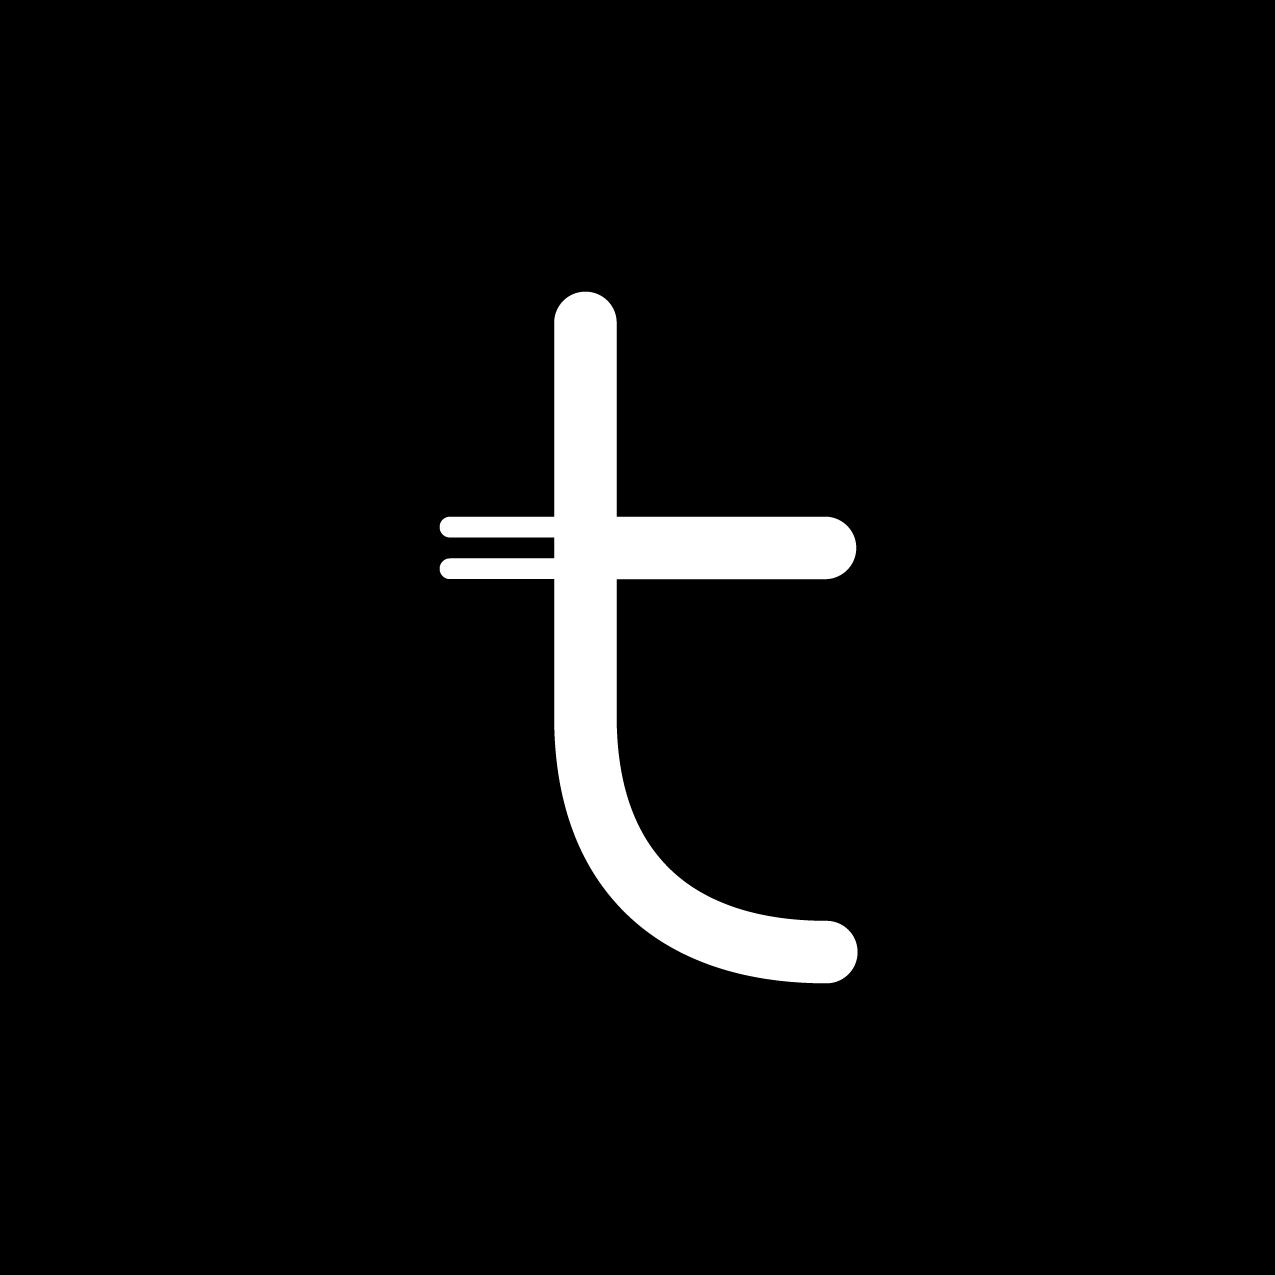 Letter T4 Design by Furia